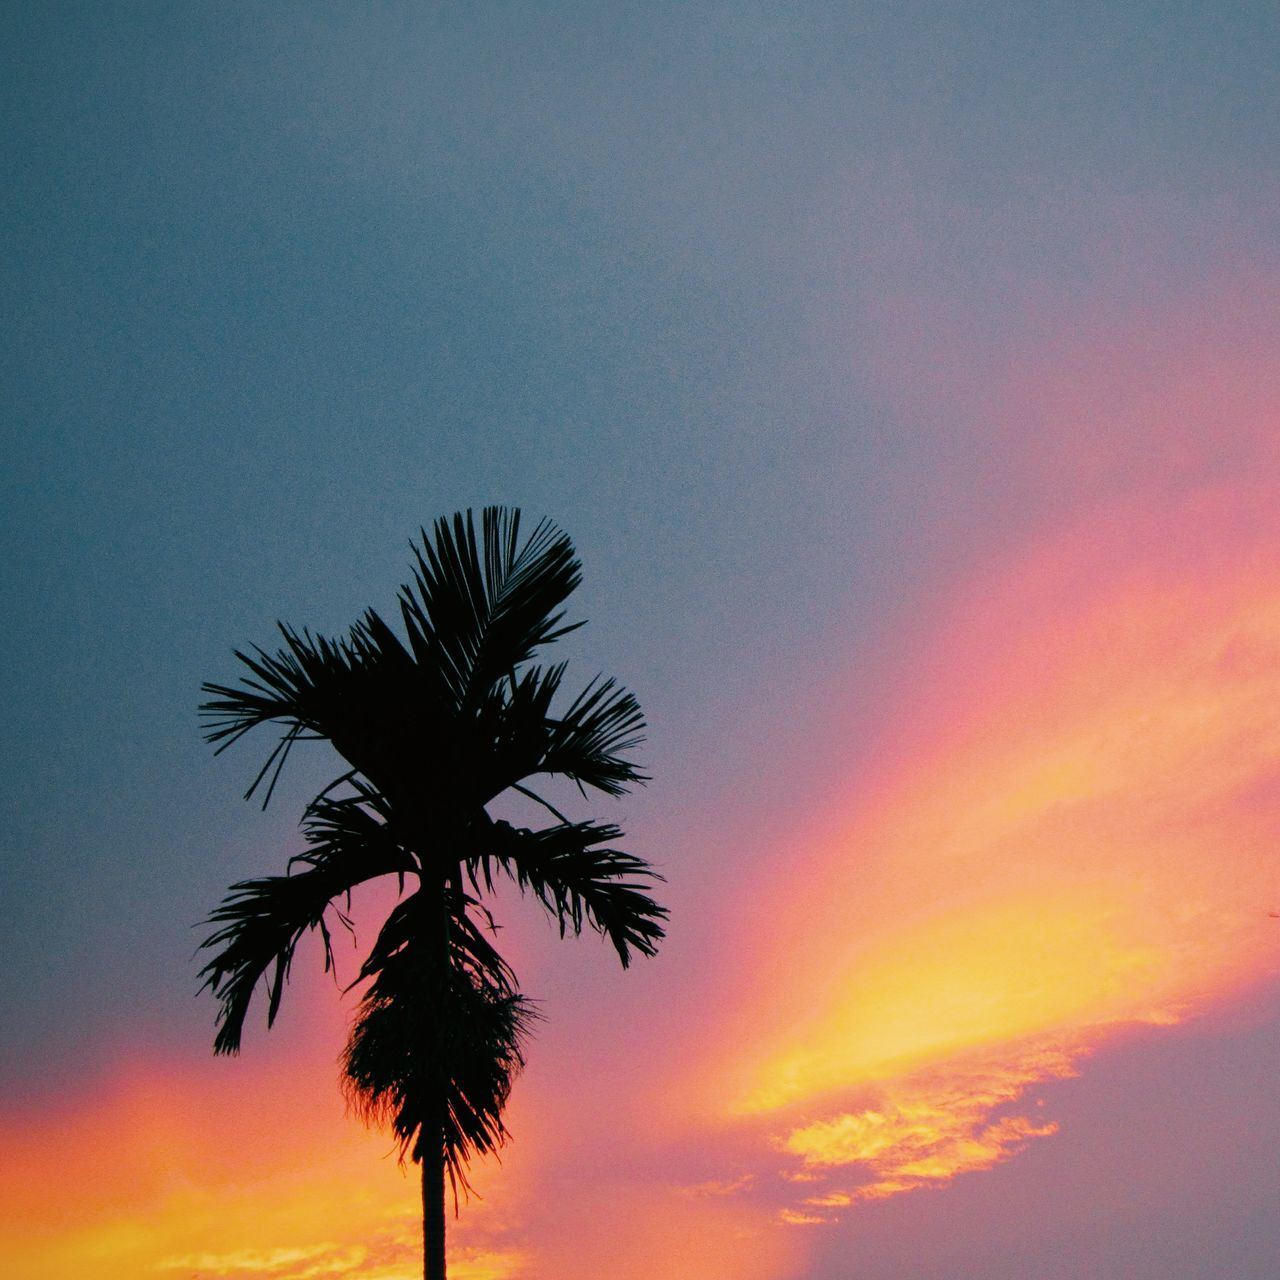 Low Angle View Of Silhouette Palm Tree Against Dramatic Sky